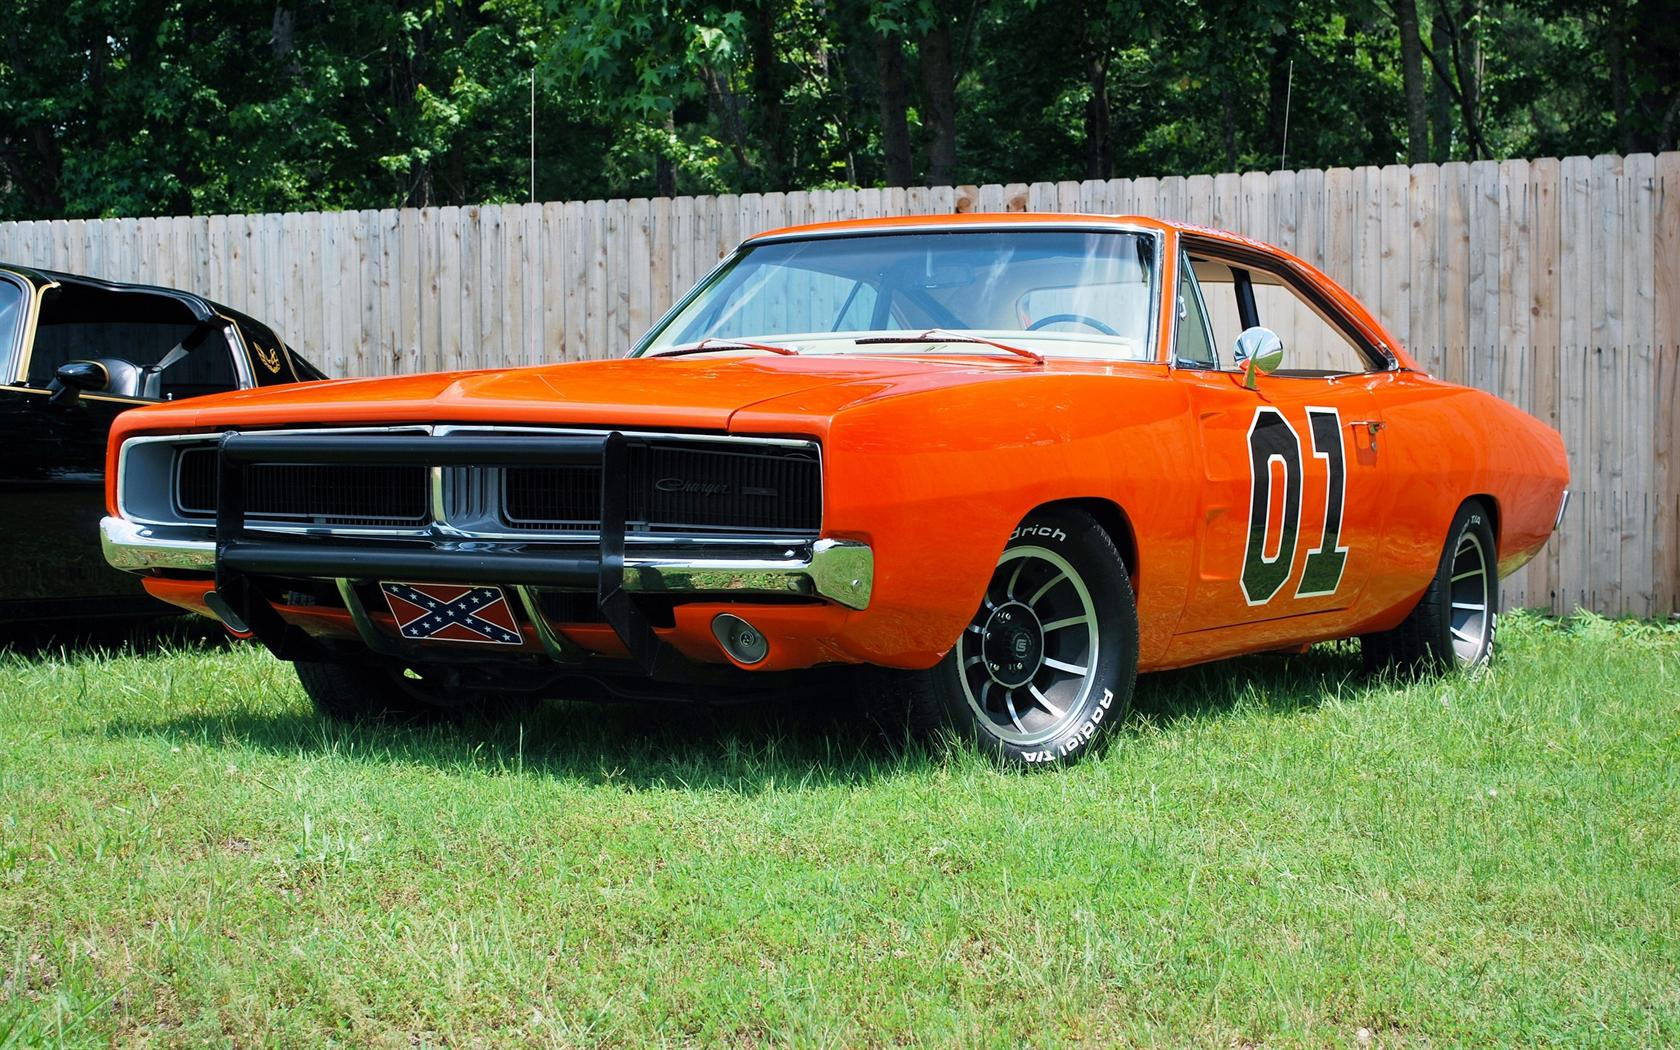 4x4 general lee 69 charger rt Car Pictures 1680x1050